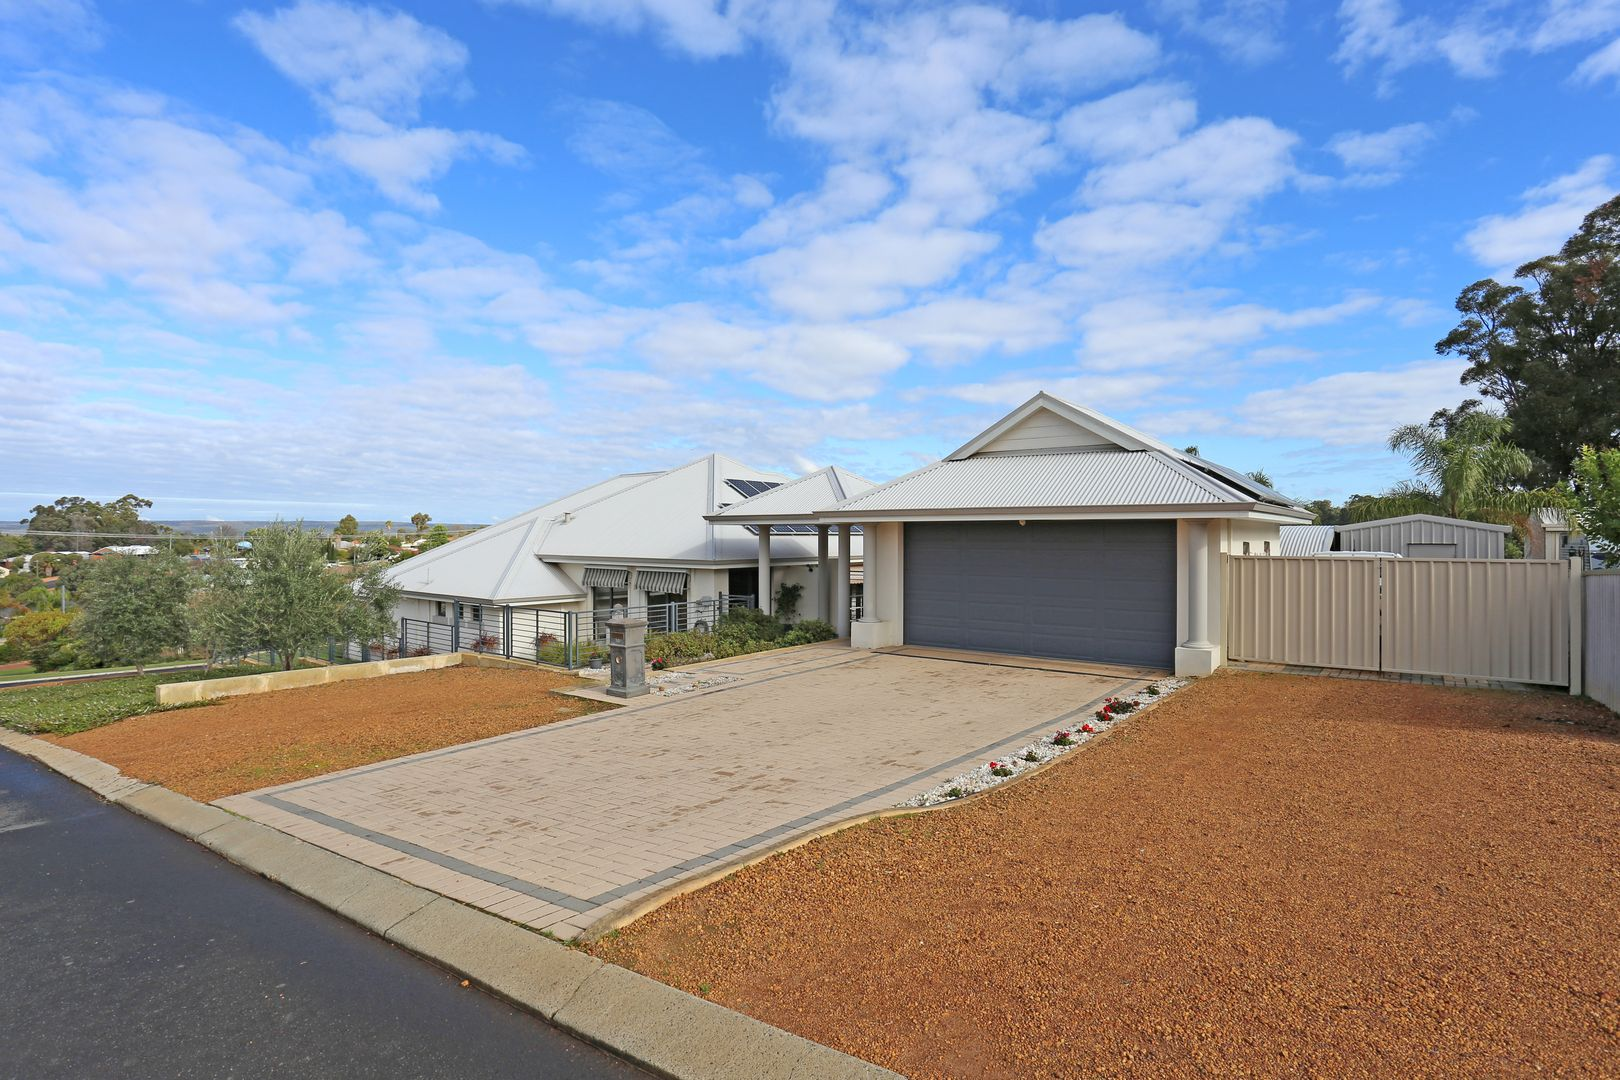 14 Hargreaves Street, Collie WA 6225, Image 1